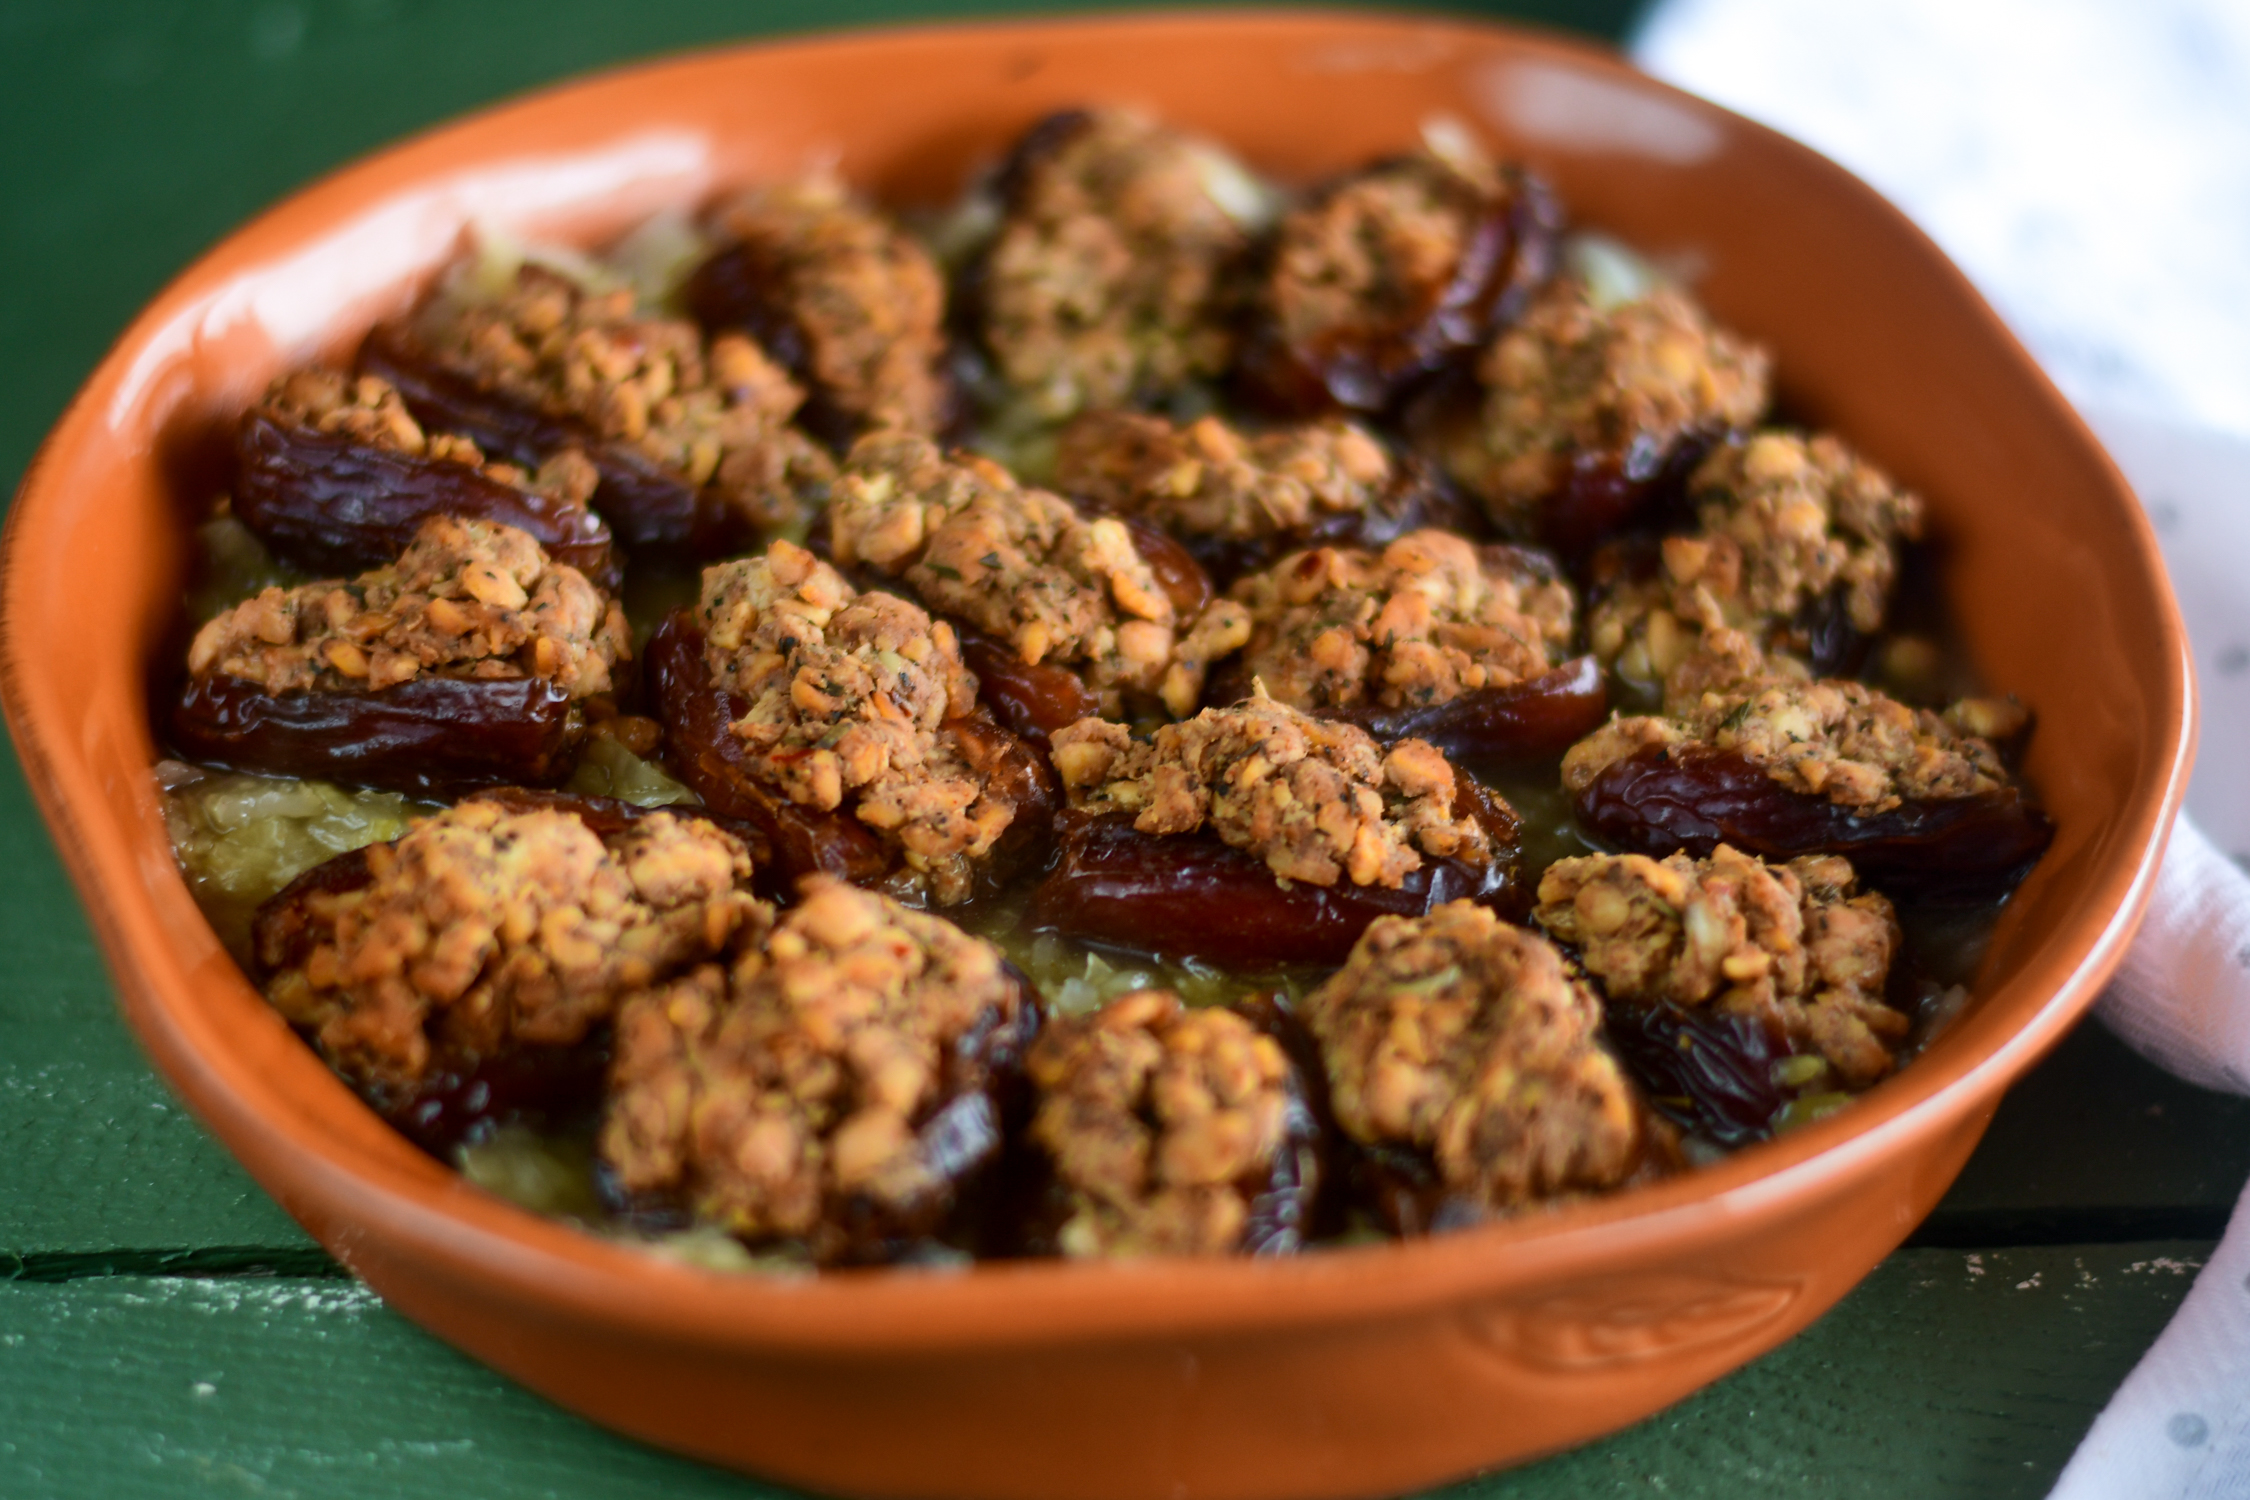 Vegan Sausage Stuffed Dates served with sauerkraut.